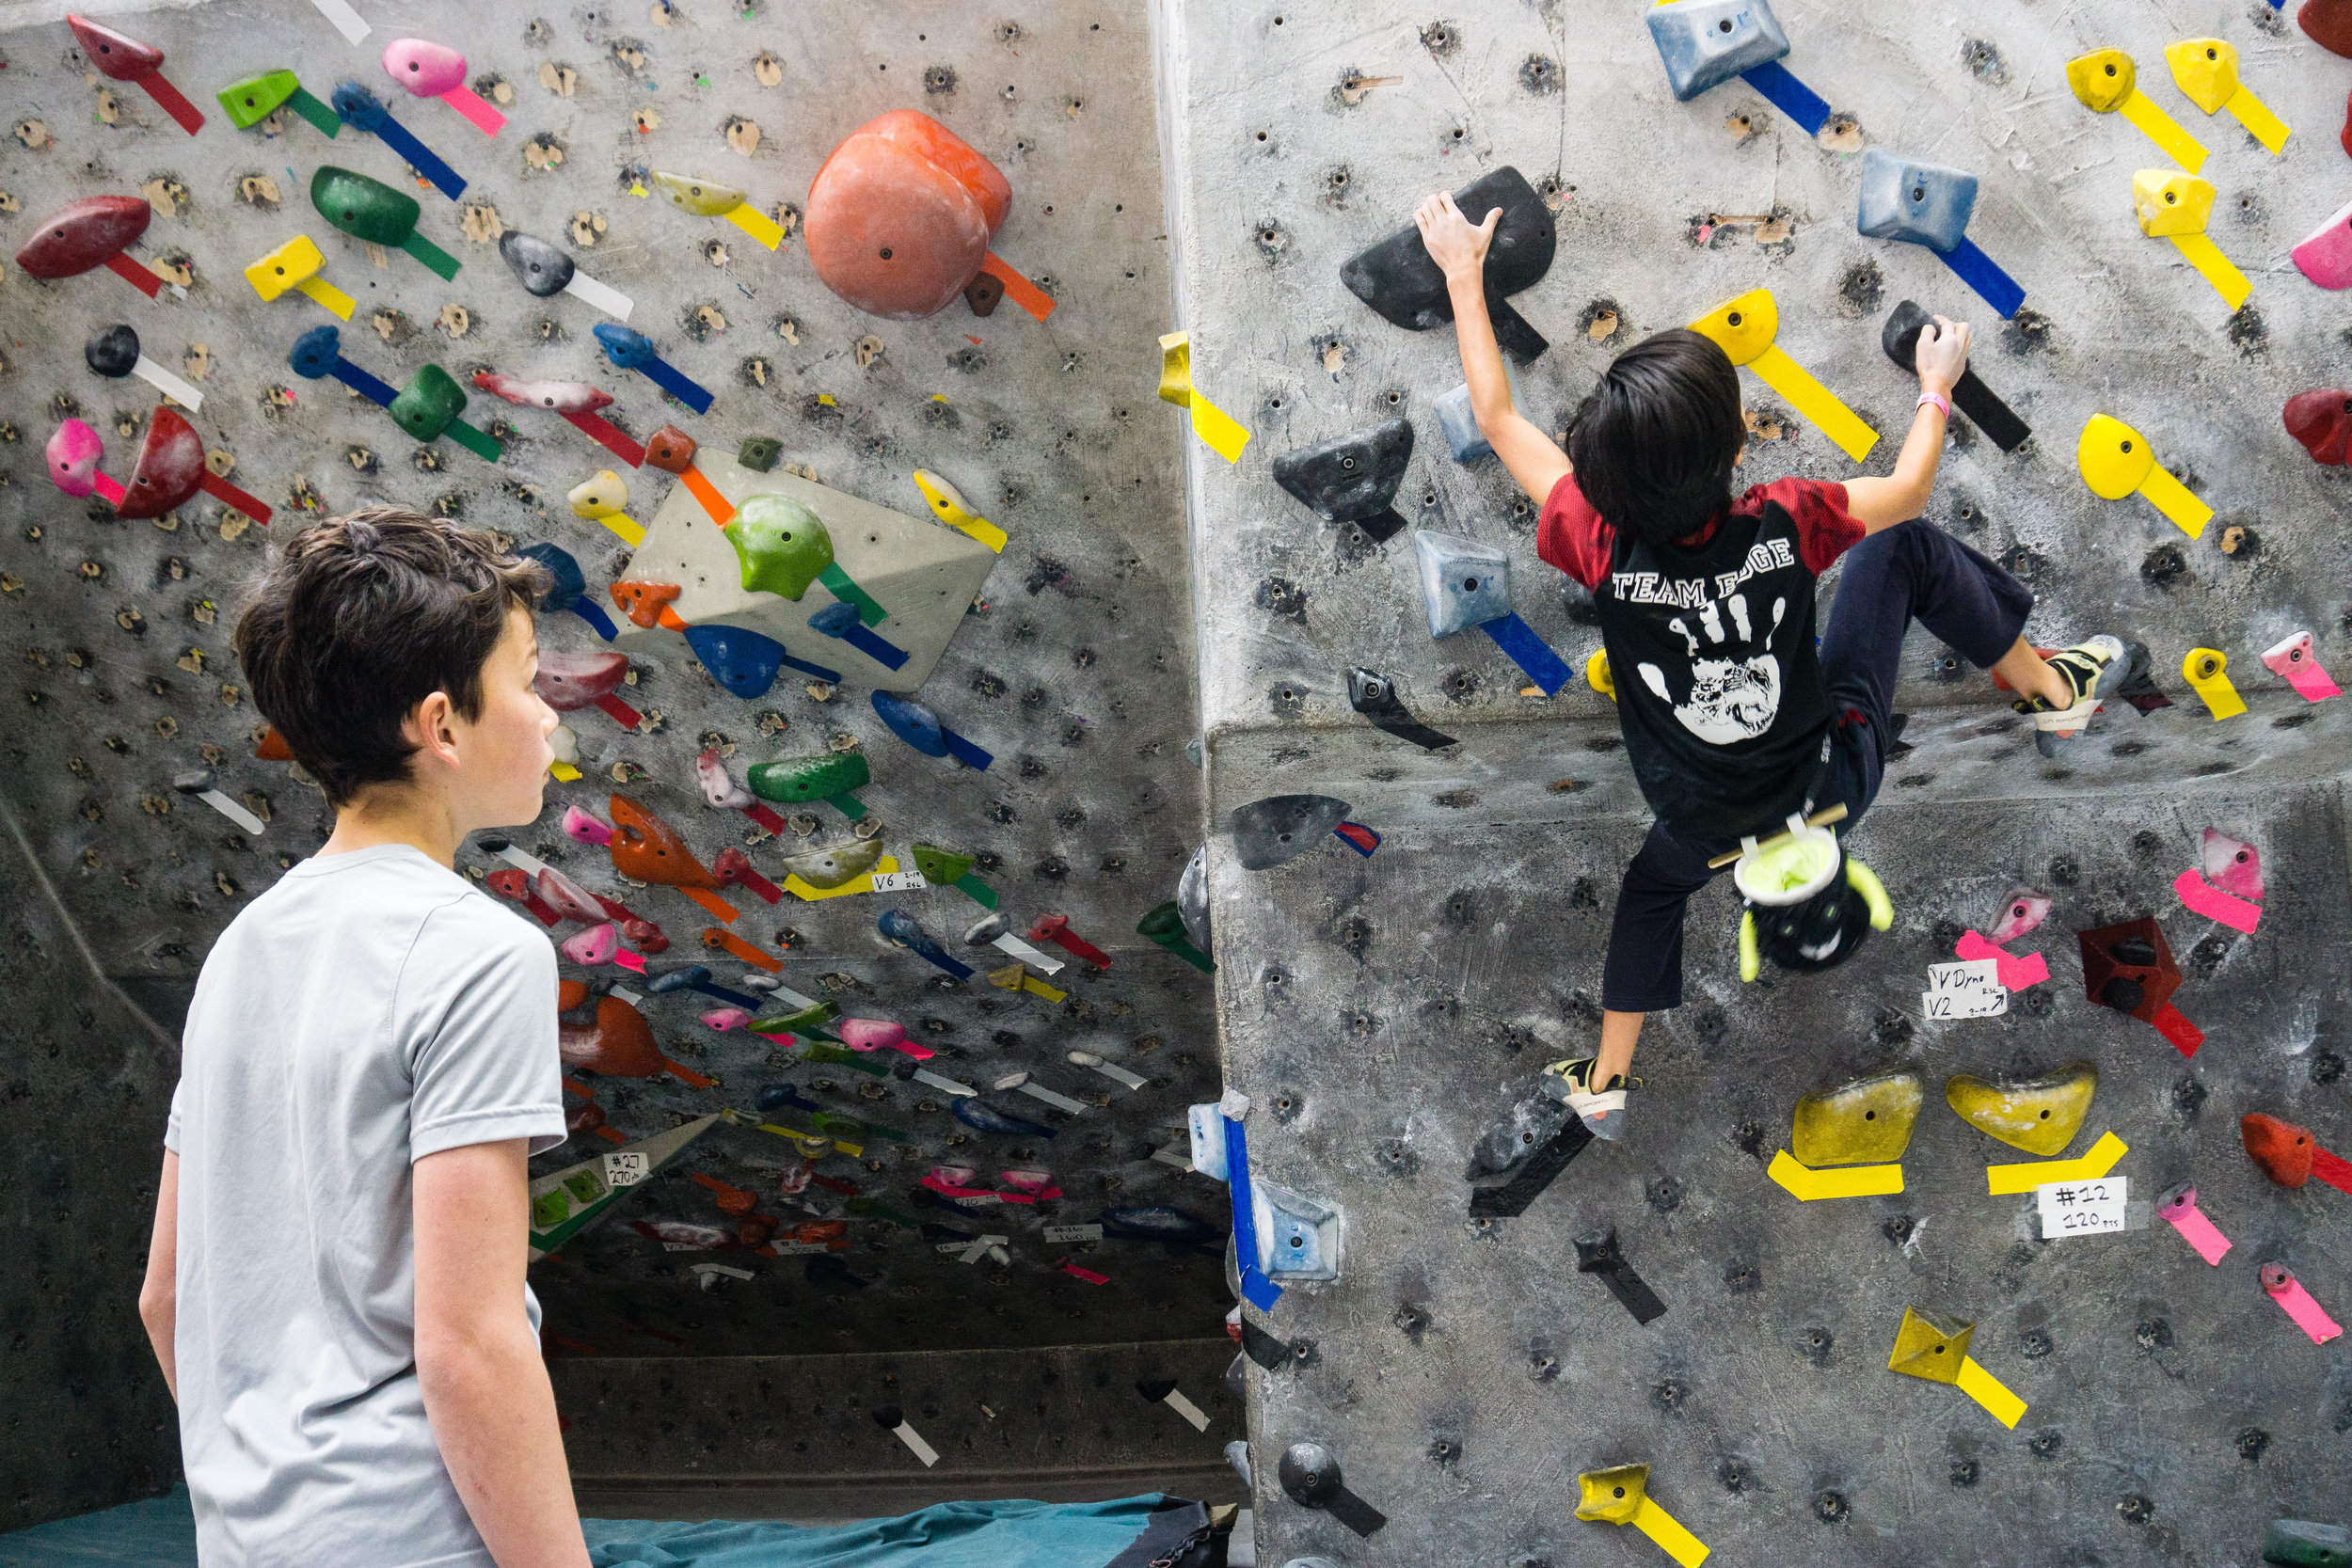 2) A youth climbing competition at Pacific Edge. One student of plastic stares at the other solving one of the problems.